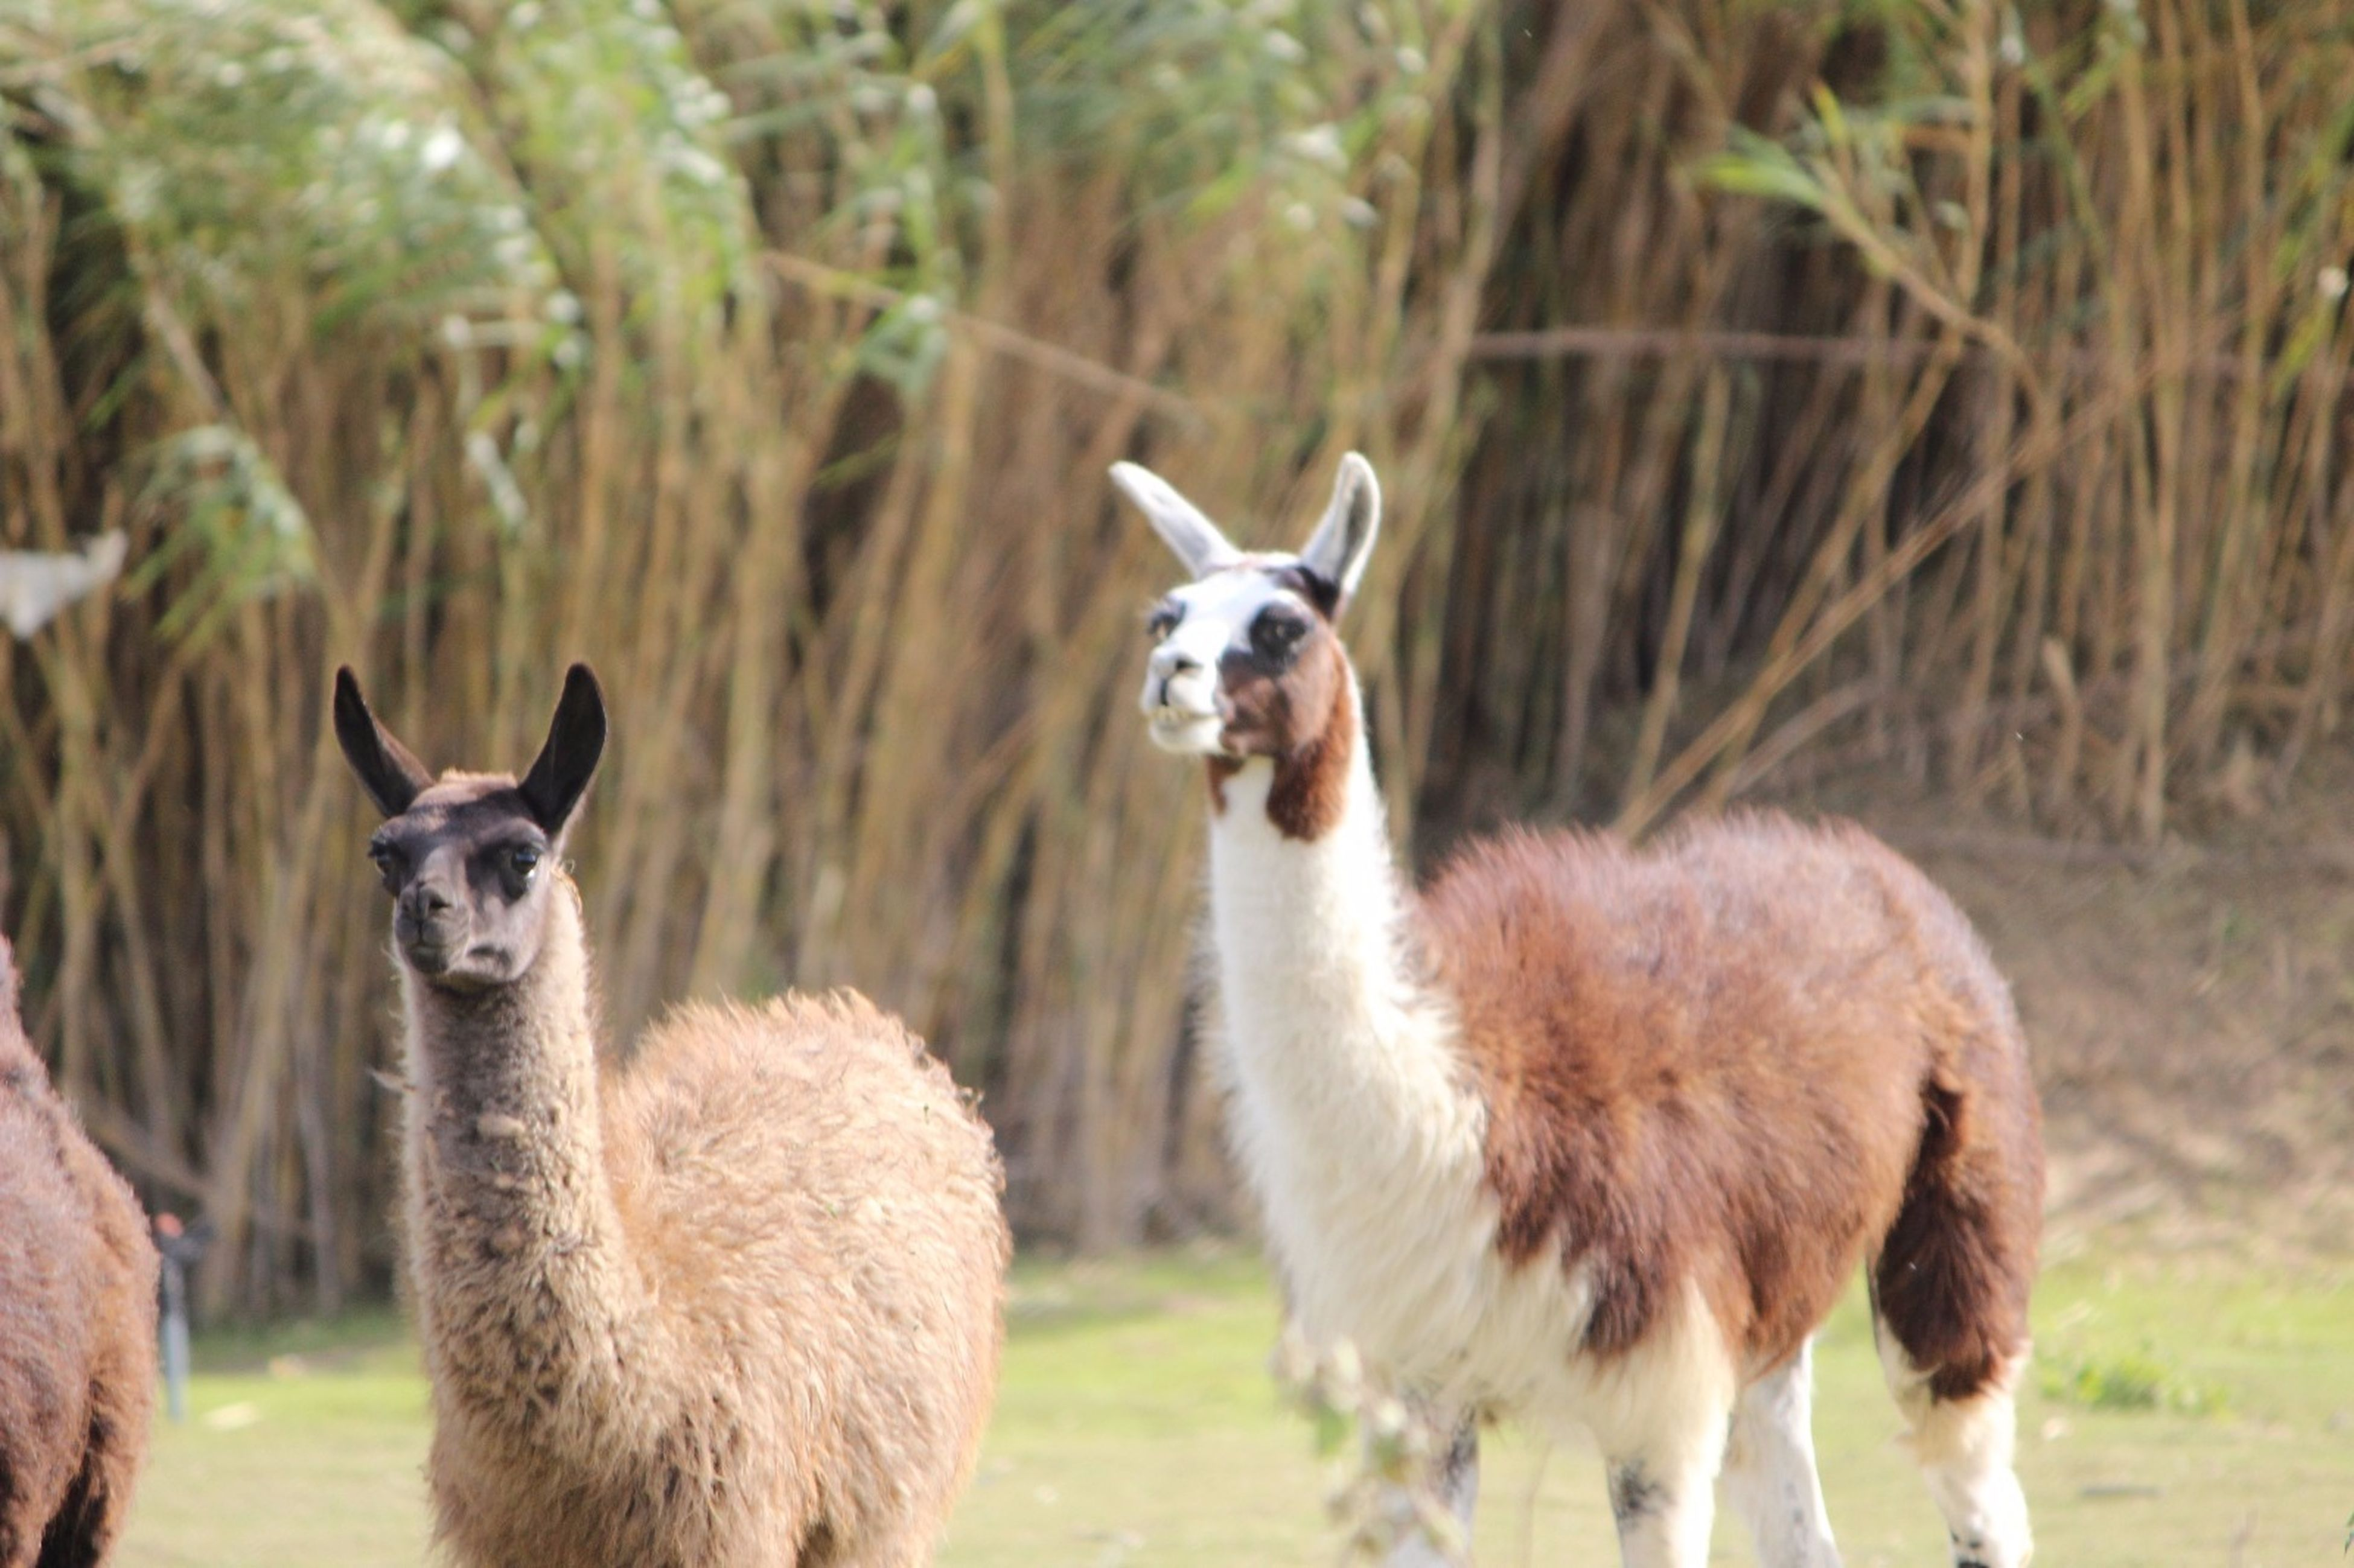 animal themes, mammal, field, portrait, looking at camera, no people, grass, nature, day, outdoors, livestock, animals in the wild, domestic animals, alpaca